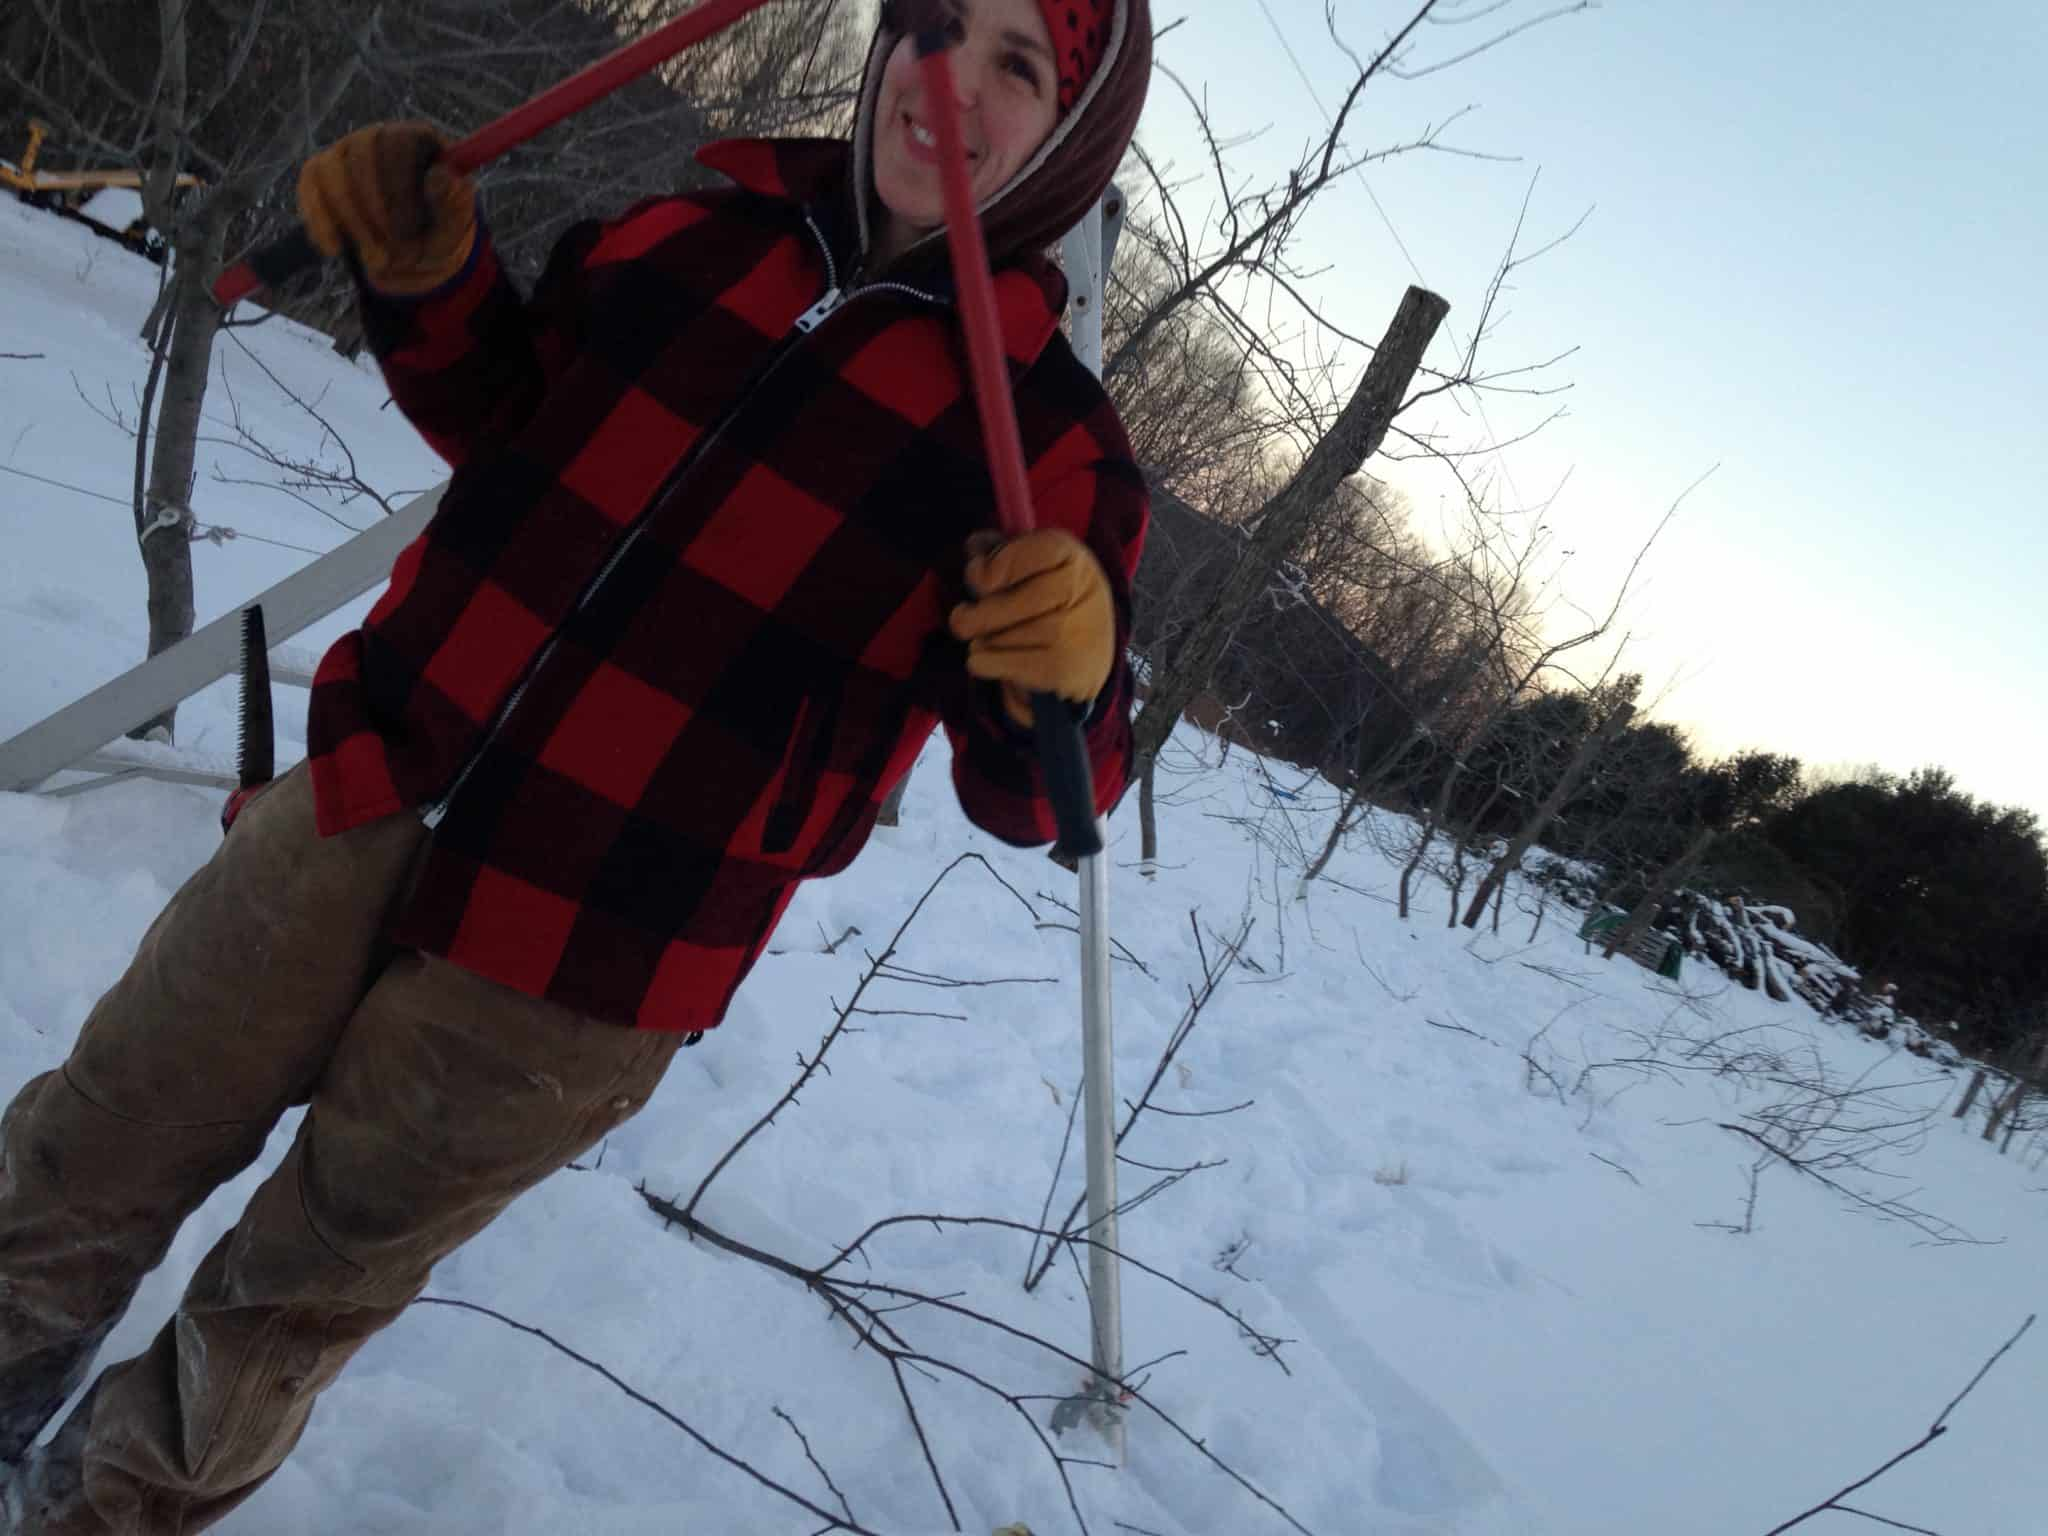 Pruning apple trees at Eve's Cidery